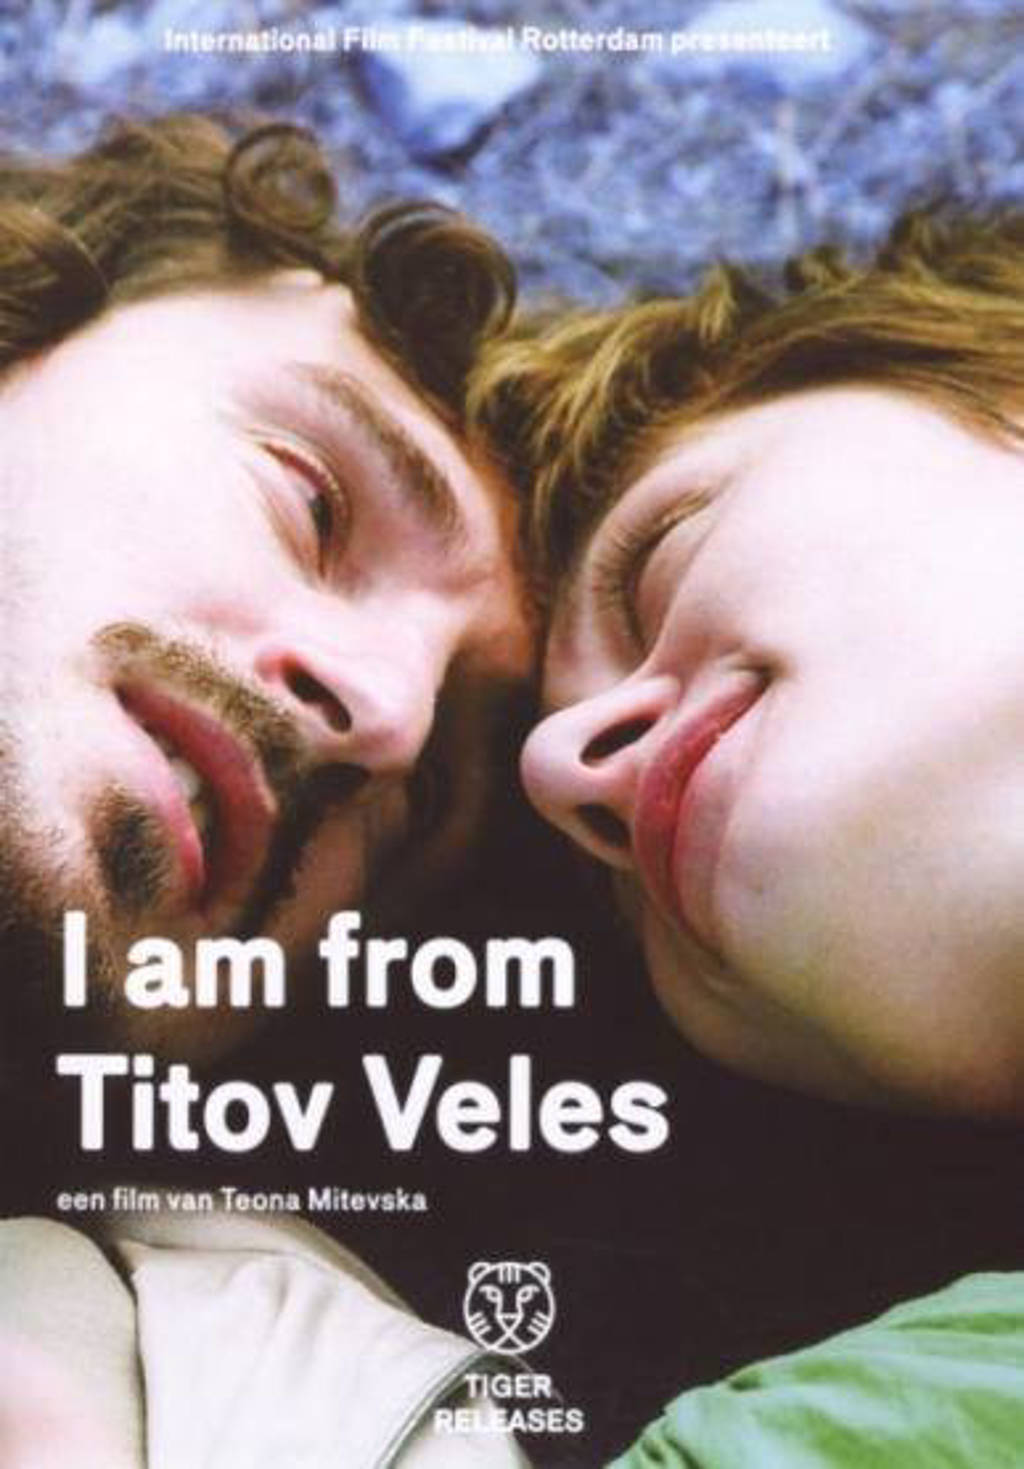 I am from Titov Veles (DVD)